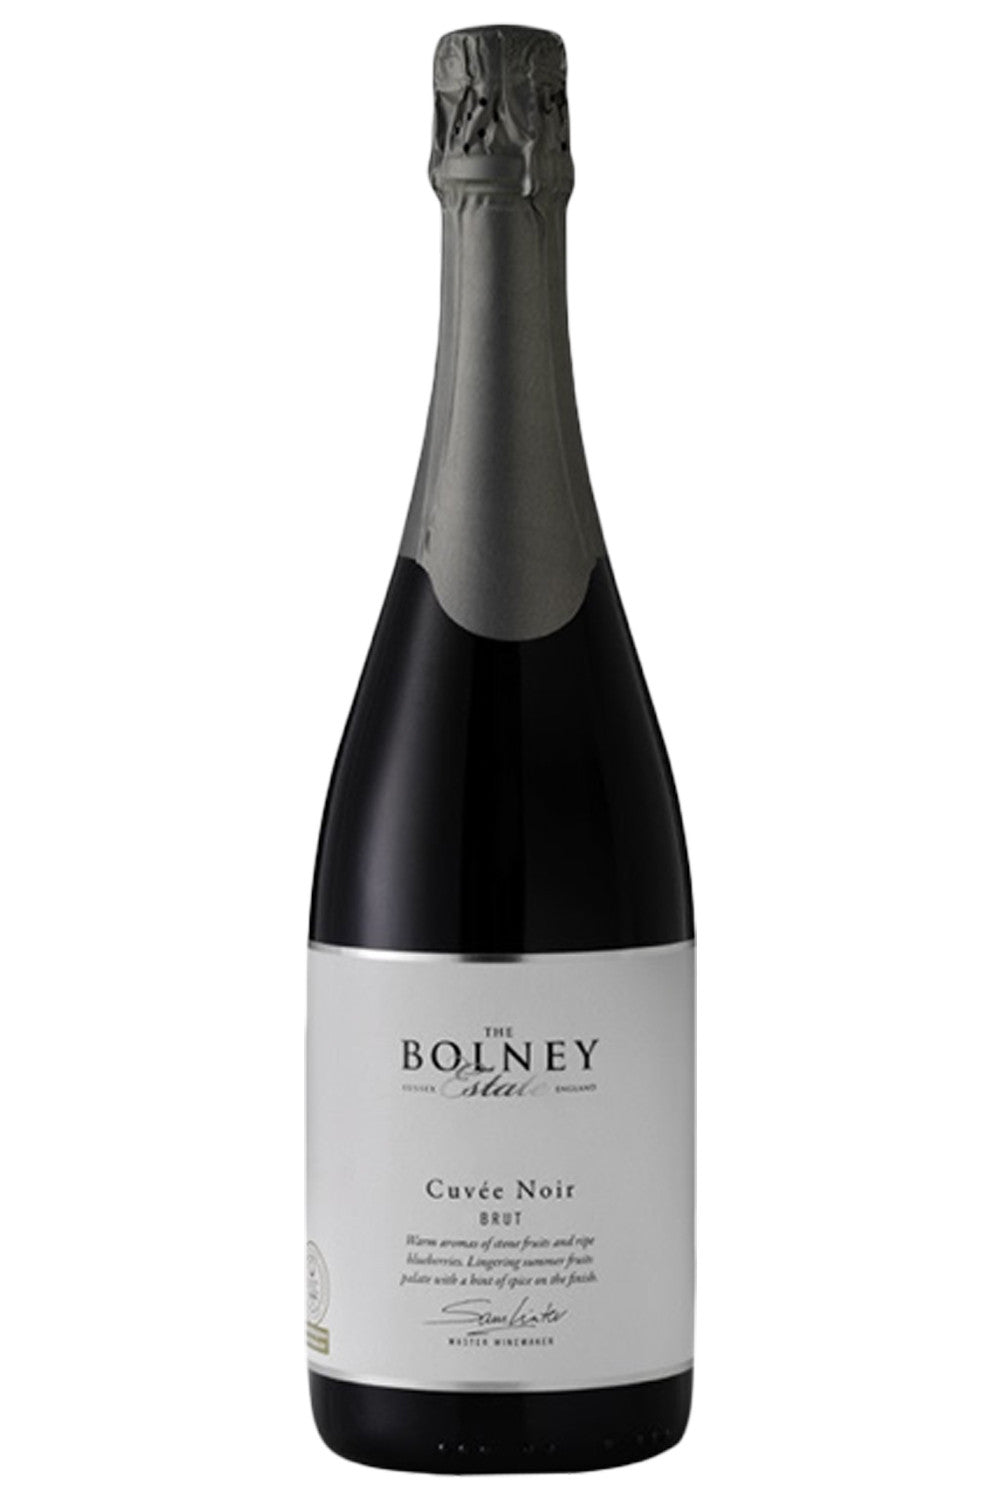 Bolney Cuvee Noir 2014 - Hawkins Bros. Fine English Wines